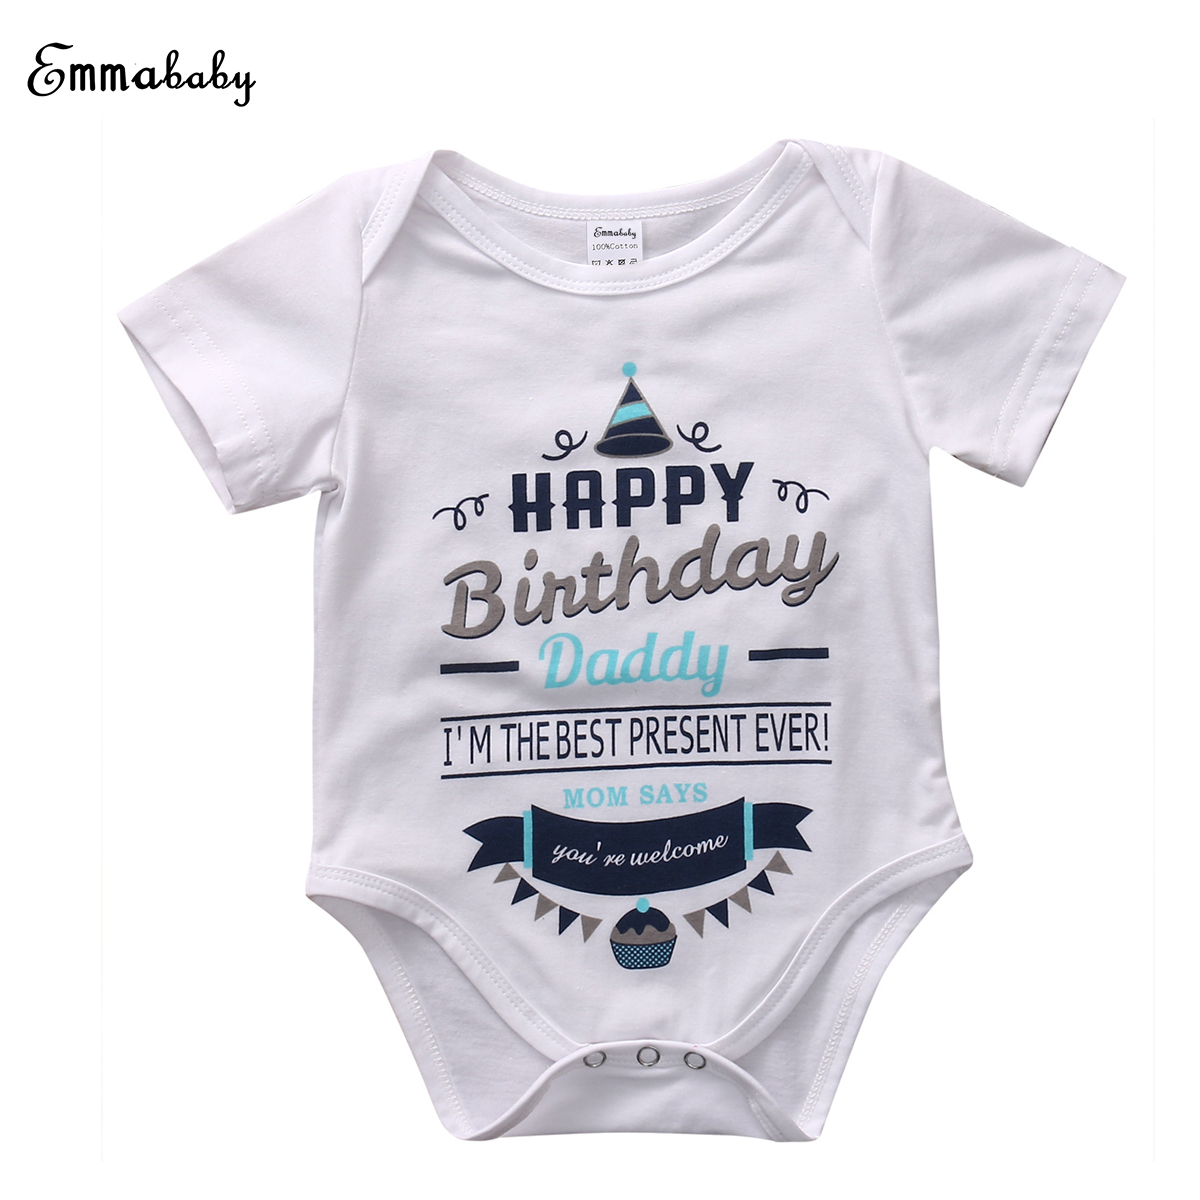 Newborn Infant Baby Boy Girl Rompers Short Sleeve Jumpsuit Happy Birthday Party Clothes Kids Boys Girls Romper 0-18M